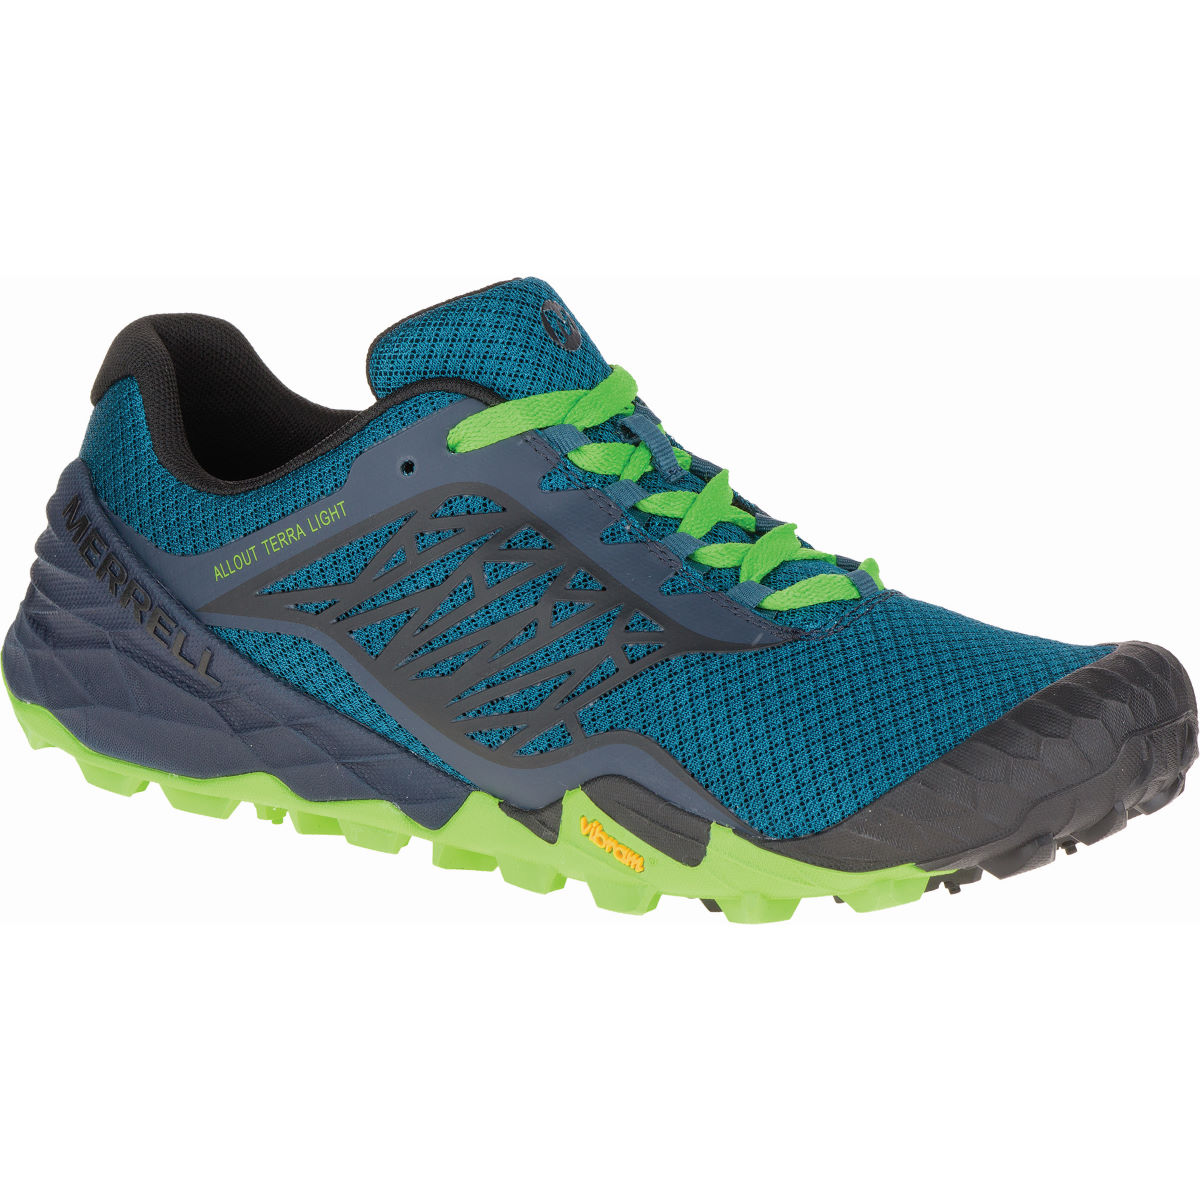 Merrell All Out Terra Light Shoes (SS16) - UK 11 Bright Blue